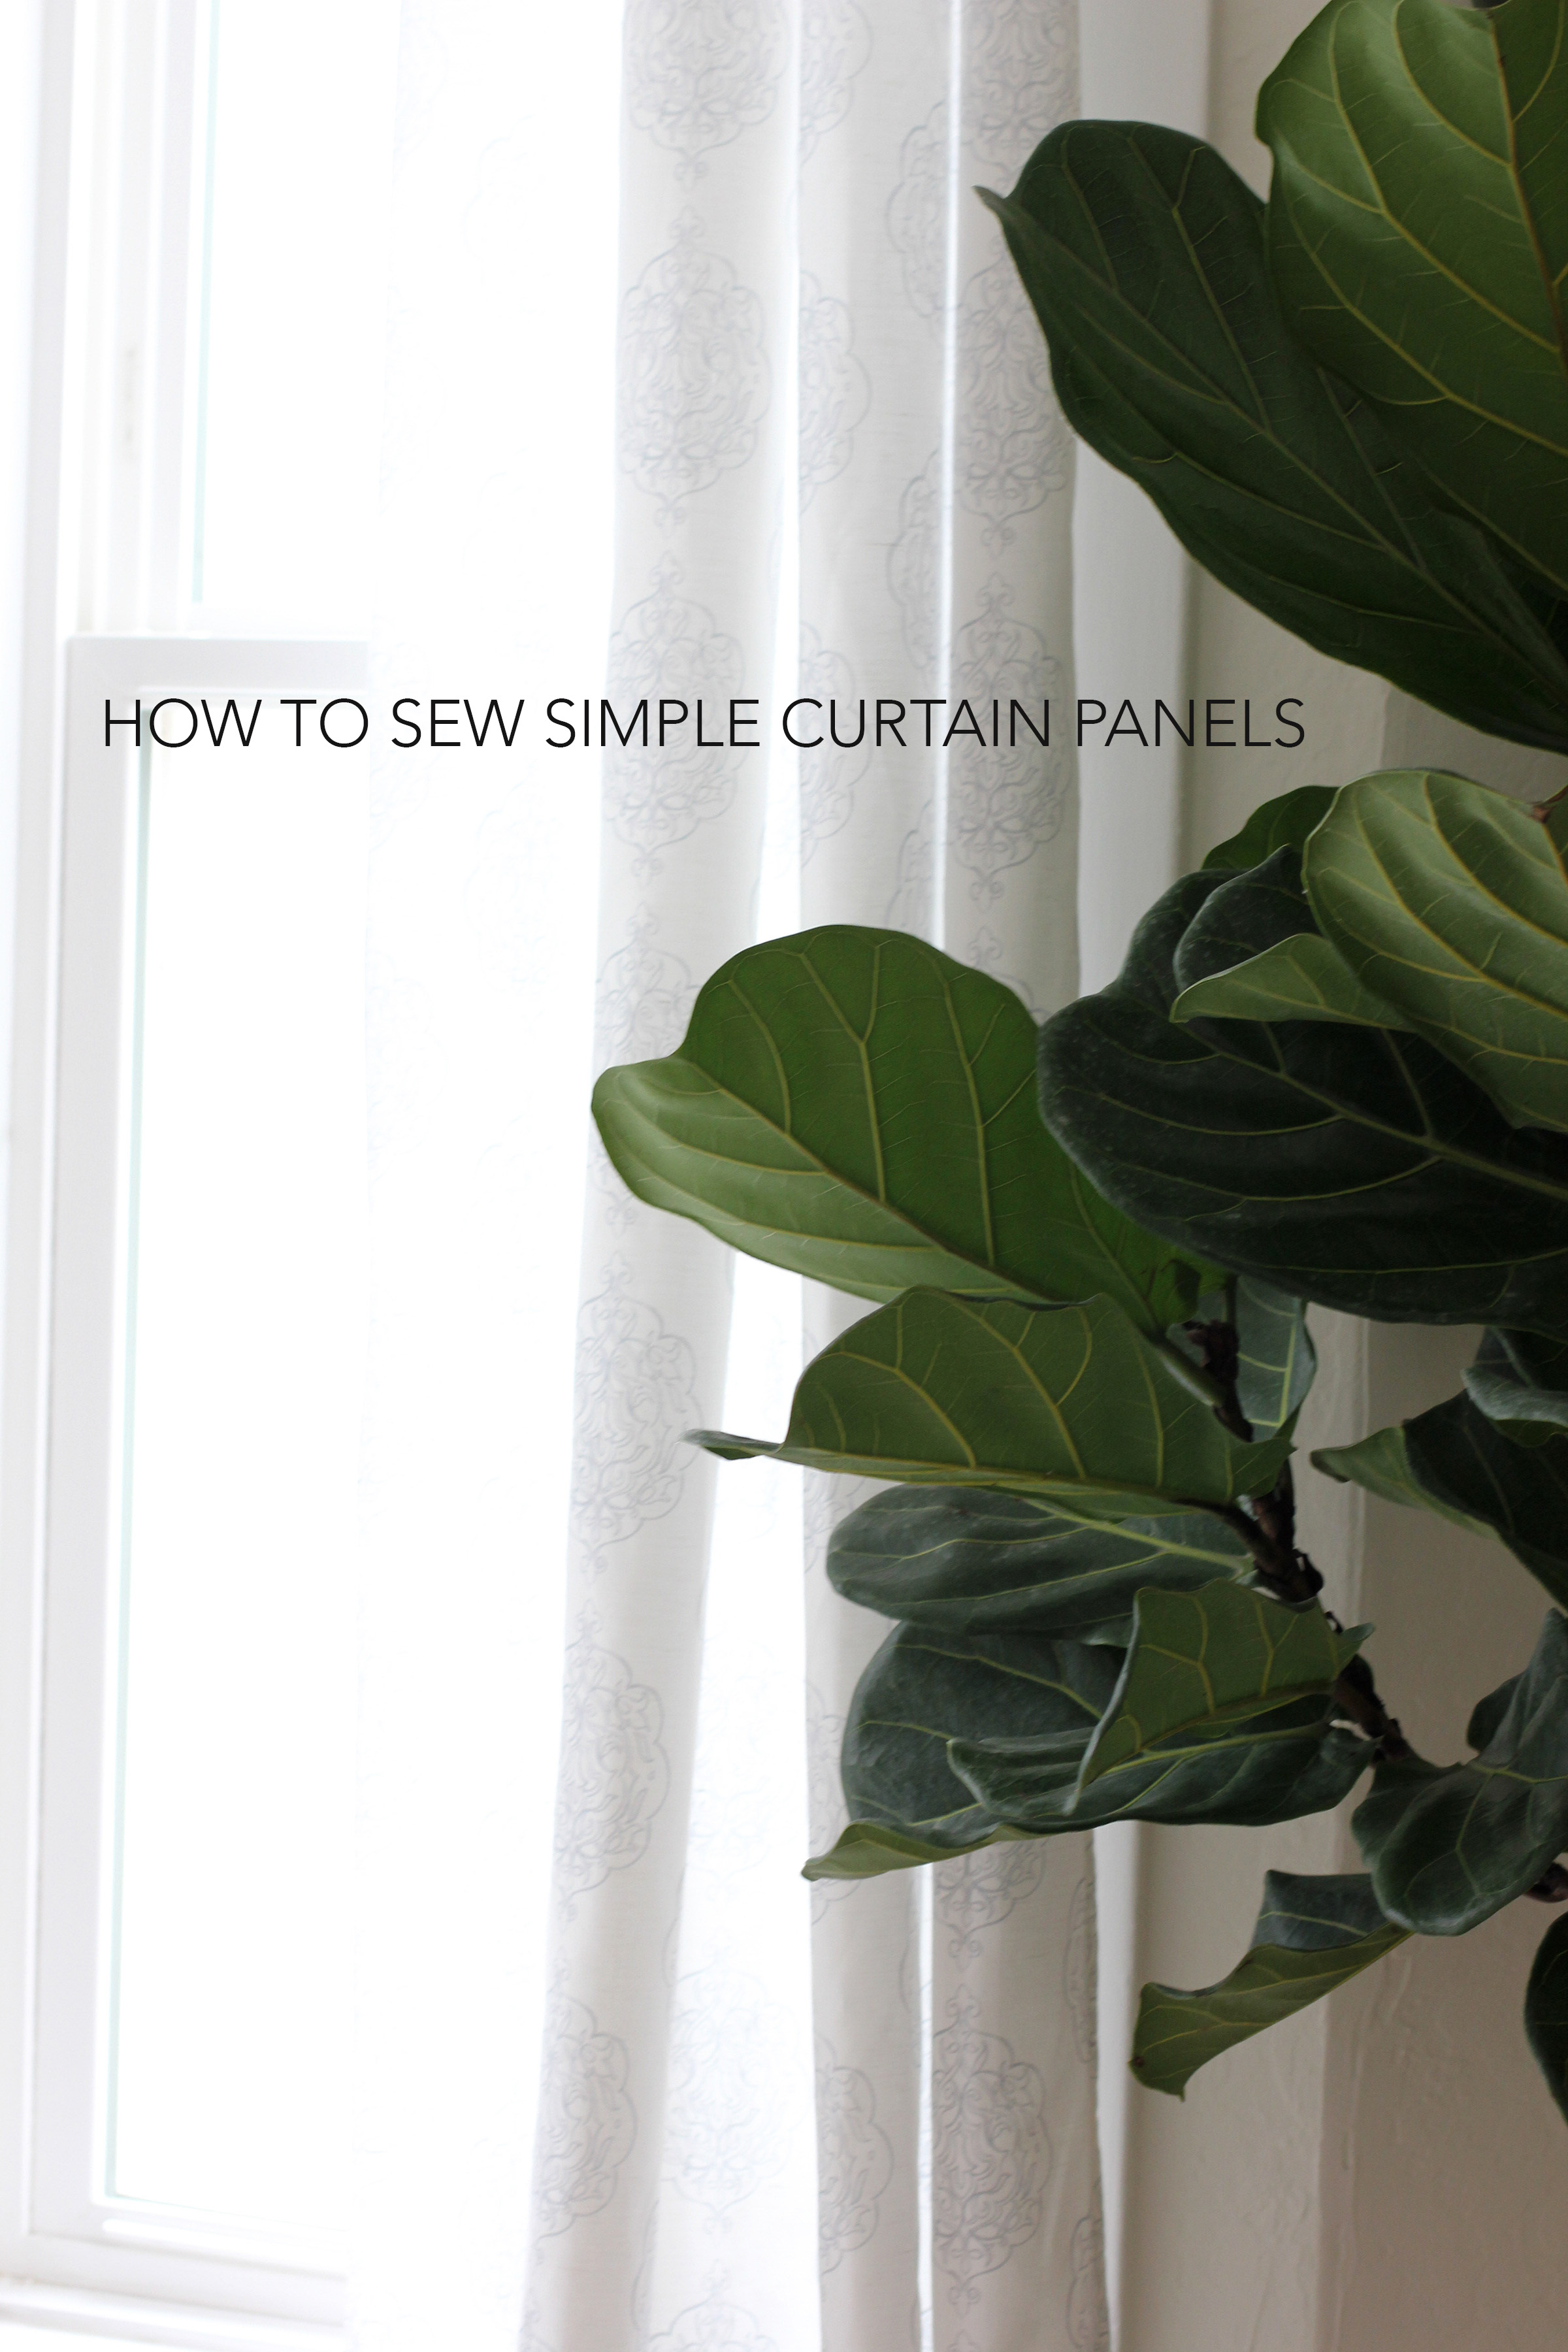 Learn how to make simple curtain panels . This is a great beginner sewing project!